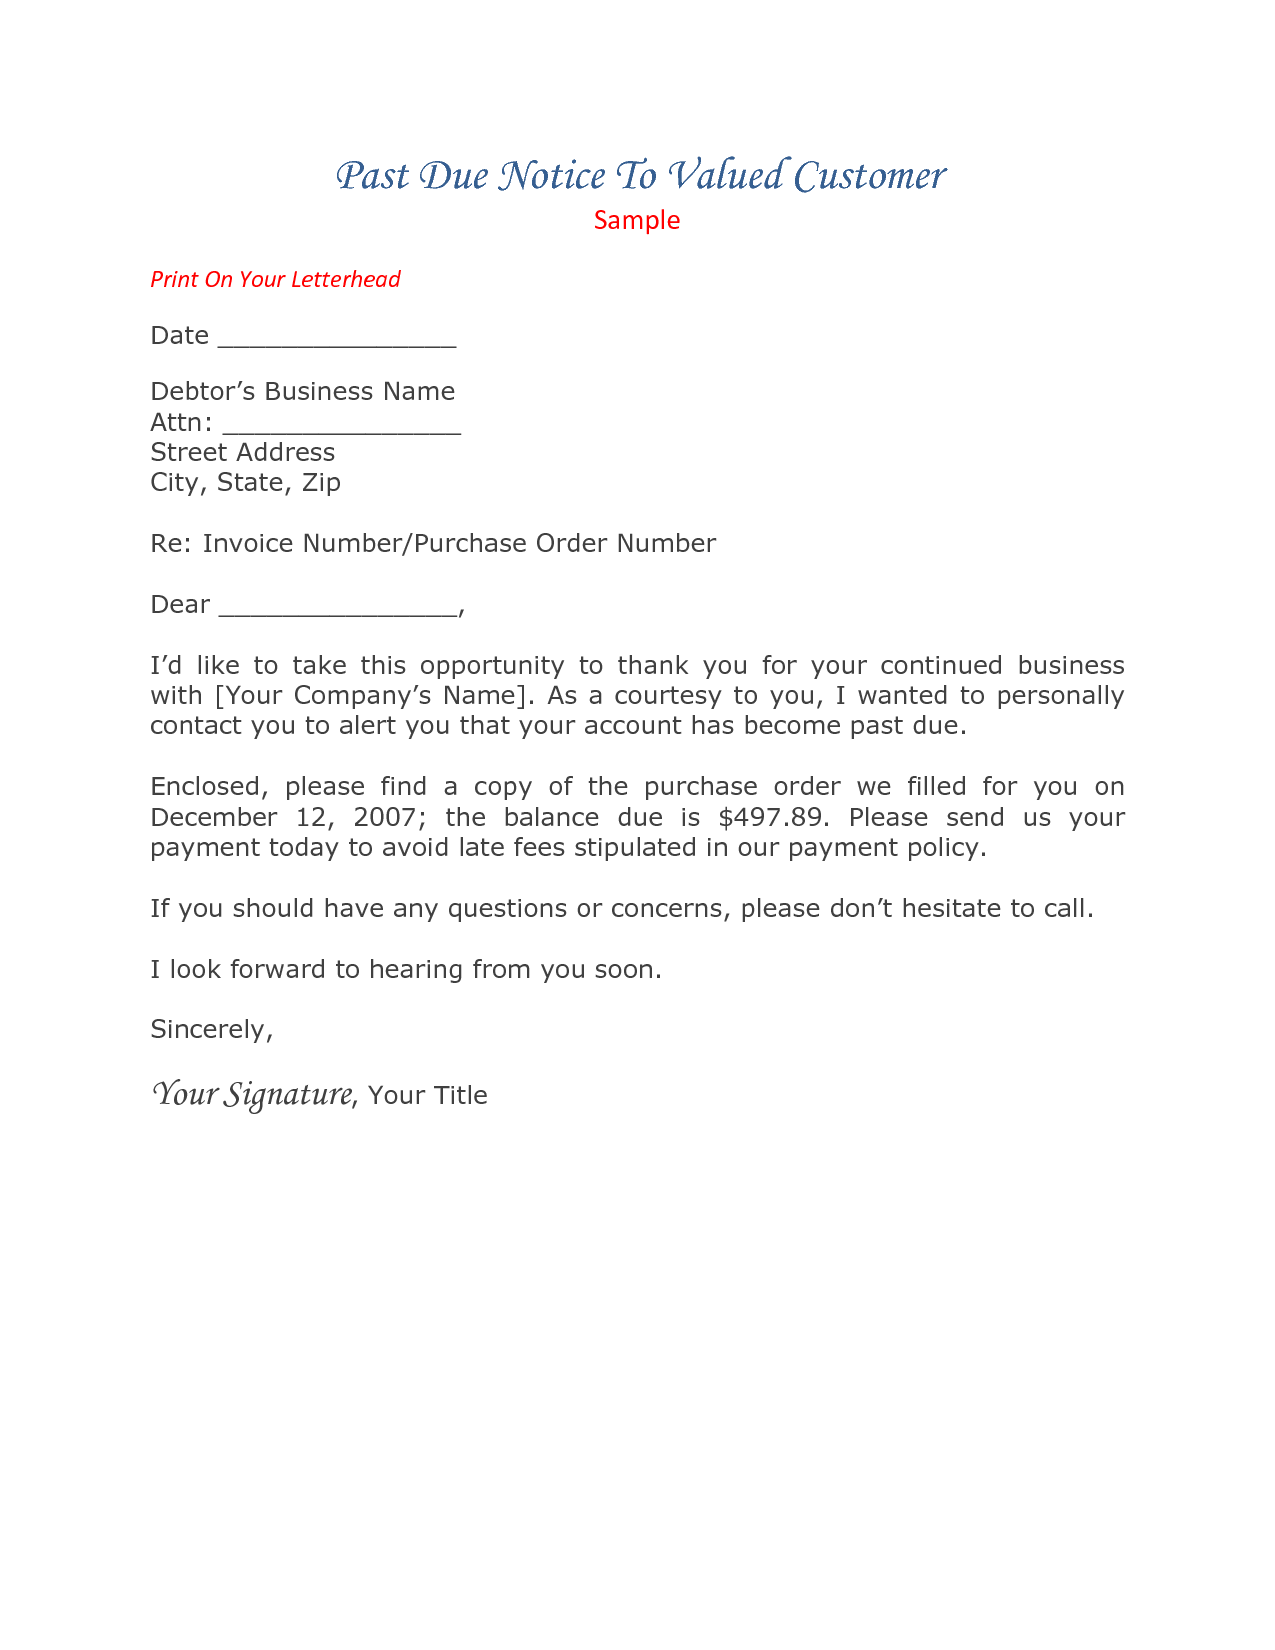 Past Due Letter 60 Days Collections Letter Sample, Template